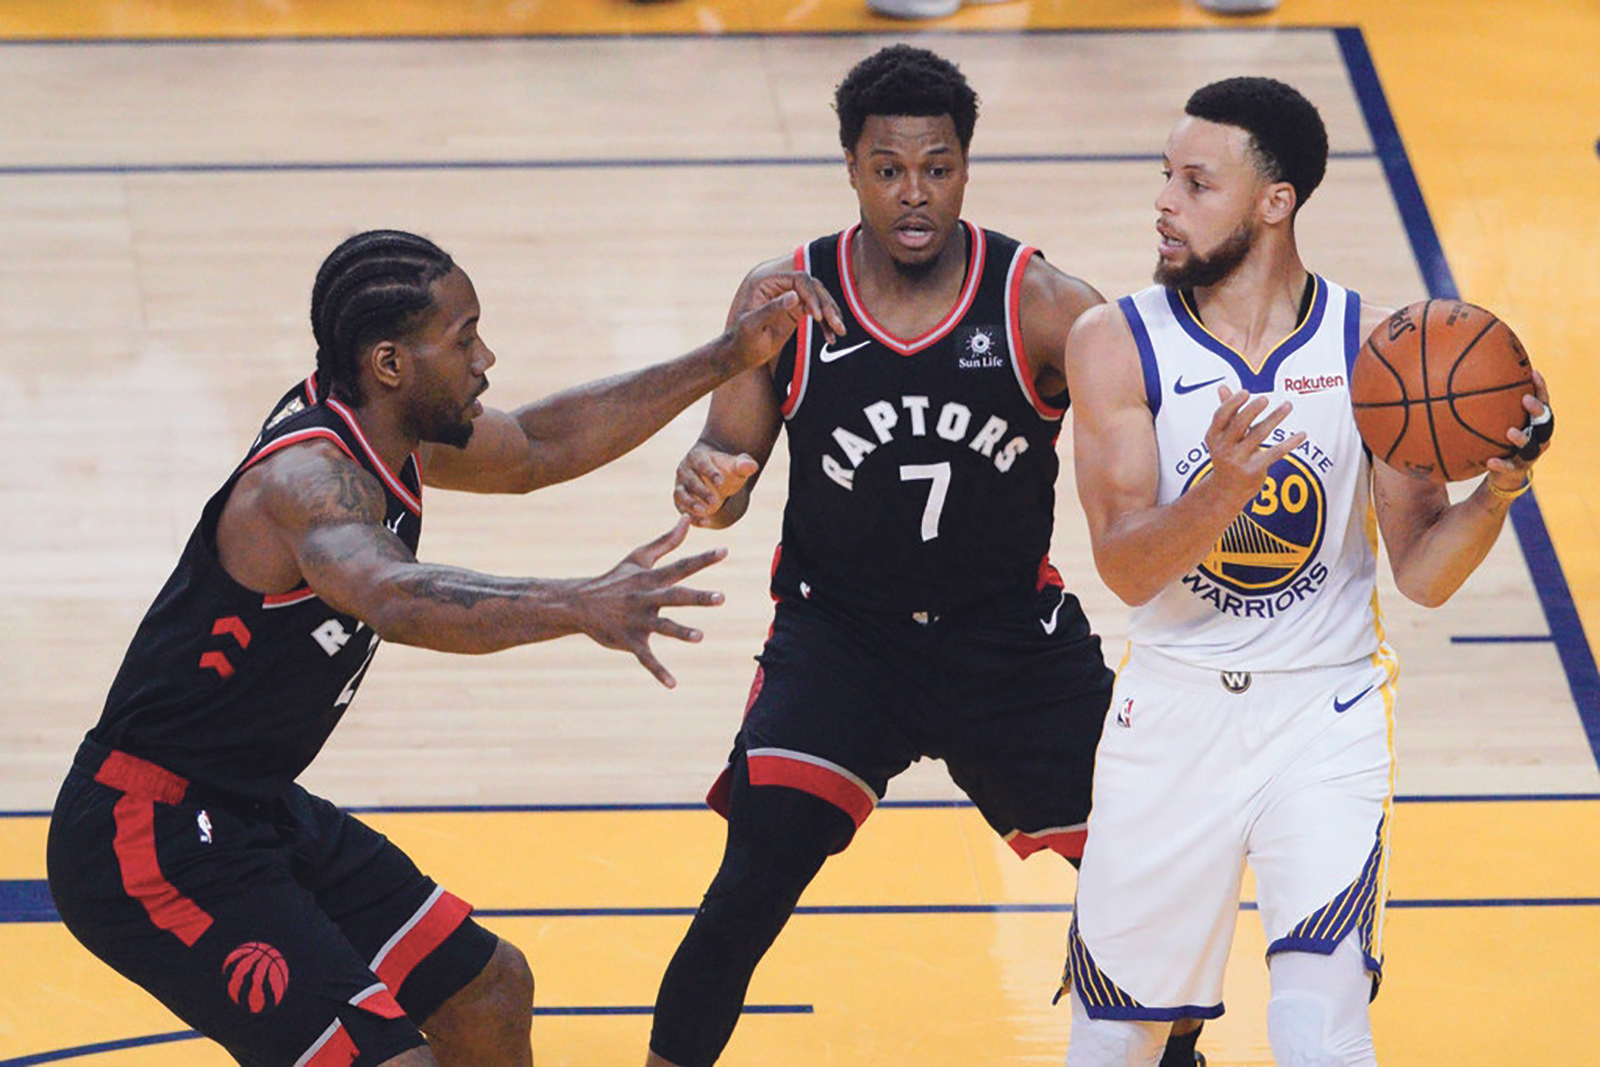 The Warriors are depending on Stephen Curry to keep them in Game 3 with key offensive players out injured. (Photo Credit Tony Avelar/Associated Press)